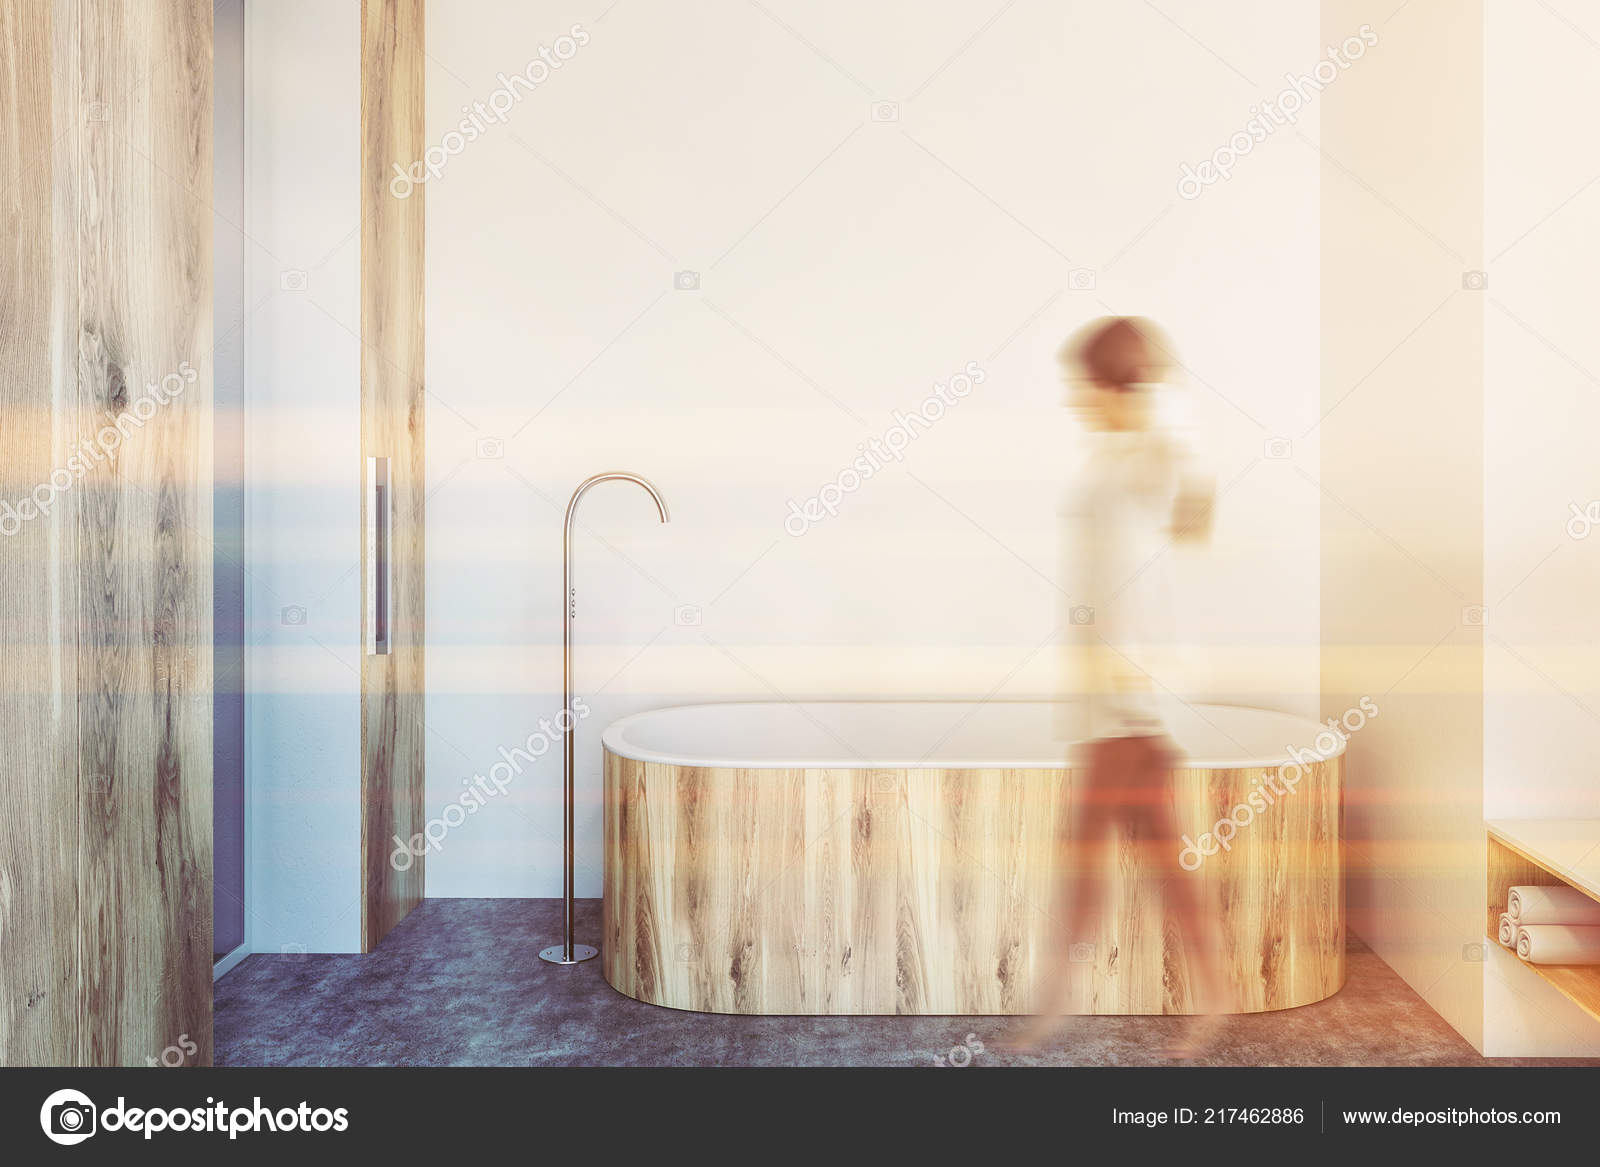 Interior Luxury Bathroom White Walls Concrete Floor Wooden Bathtub Vertical Stock Photo C Denisismagilov 217462886